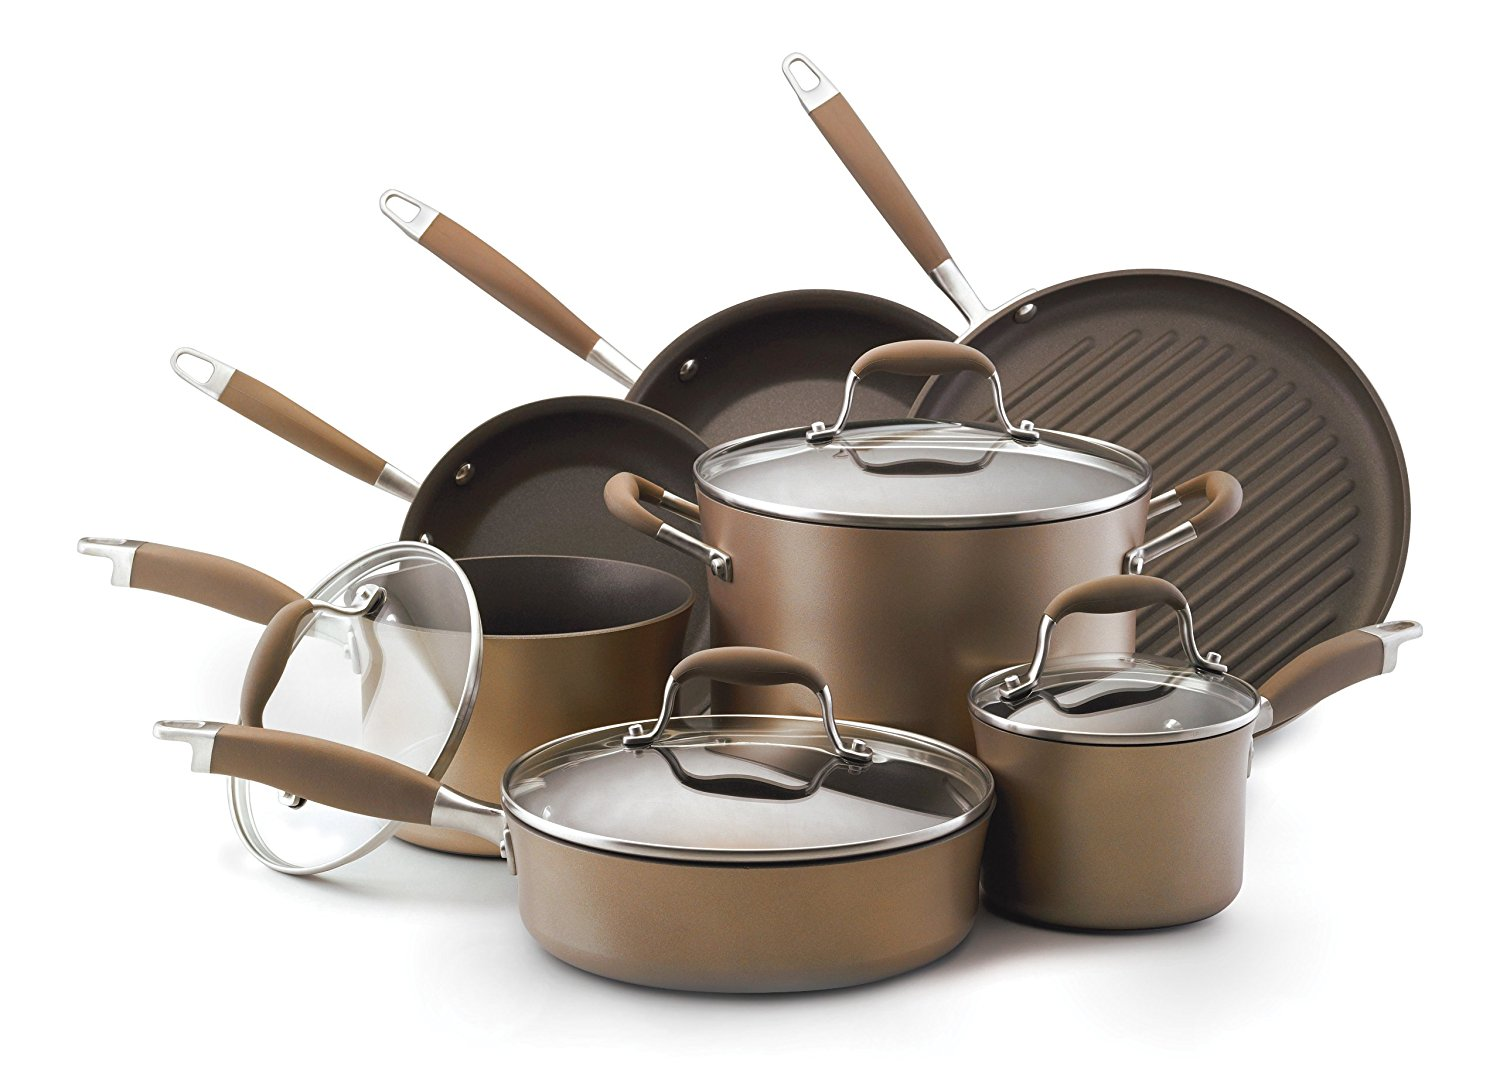 Anolon Advanced Bronze Hard Anodized Nonstick 11-Piece Cookware Set